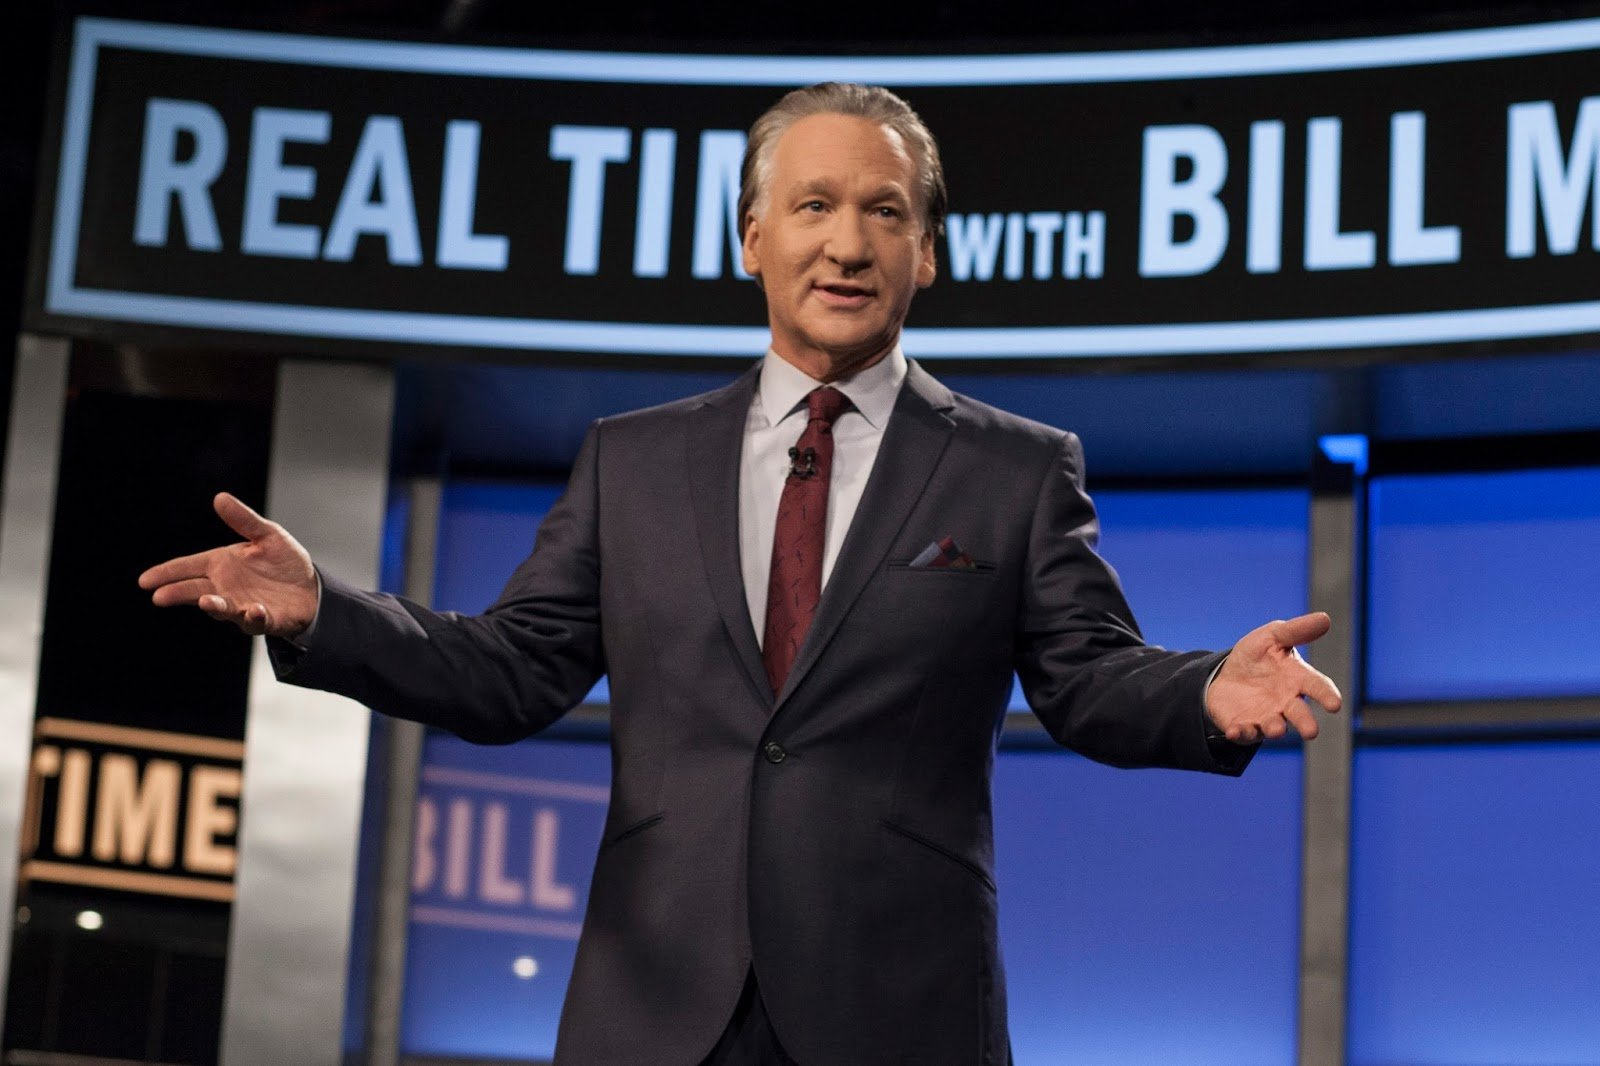 Does Bill Maher and Other White Liberals Get A Pass on Racism?